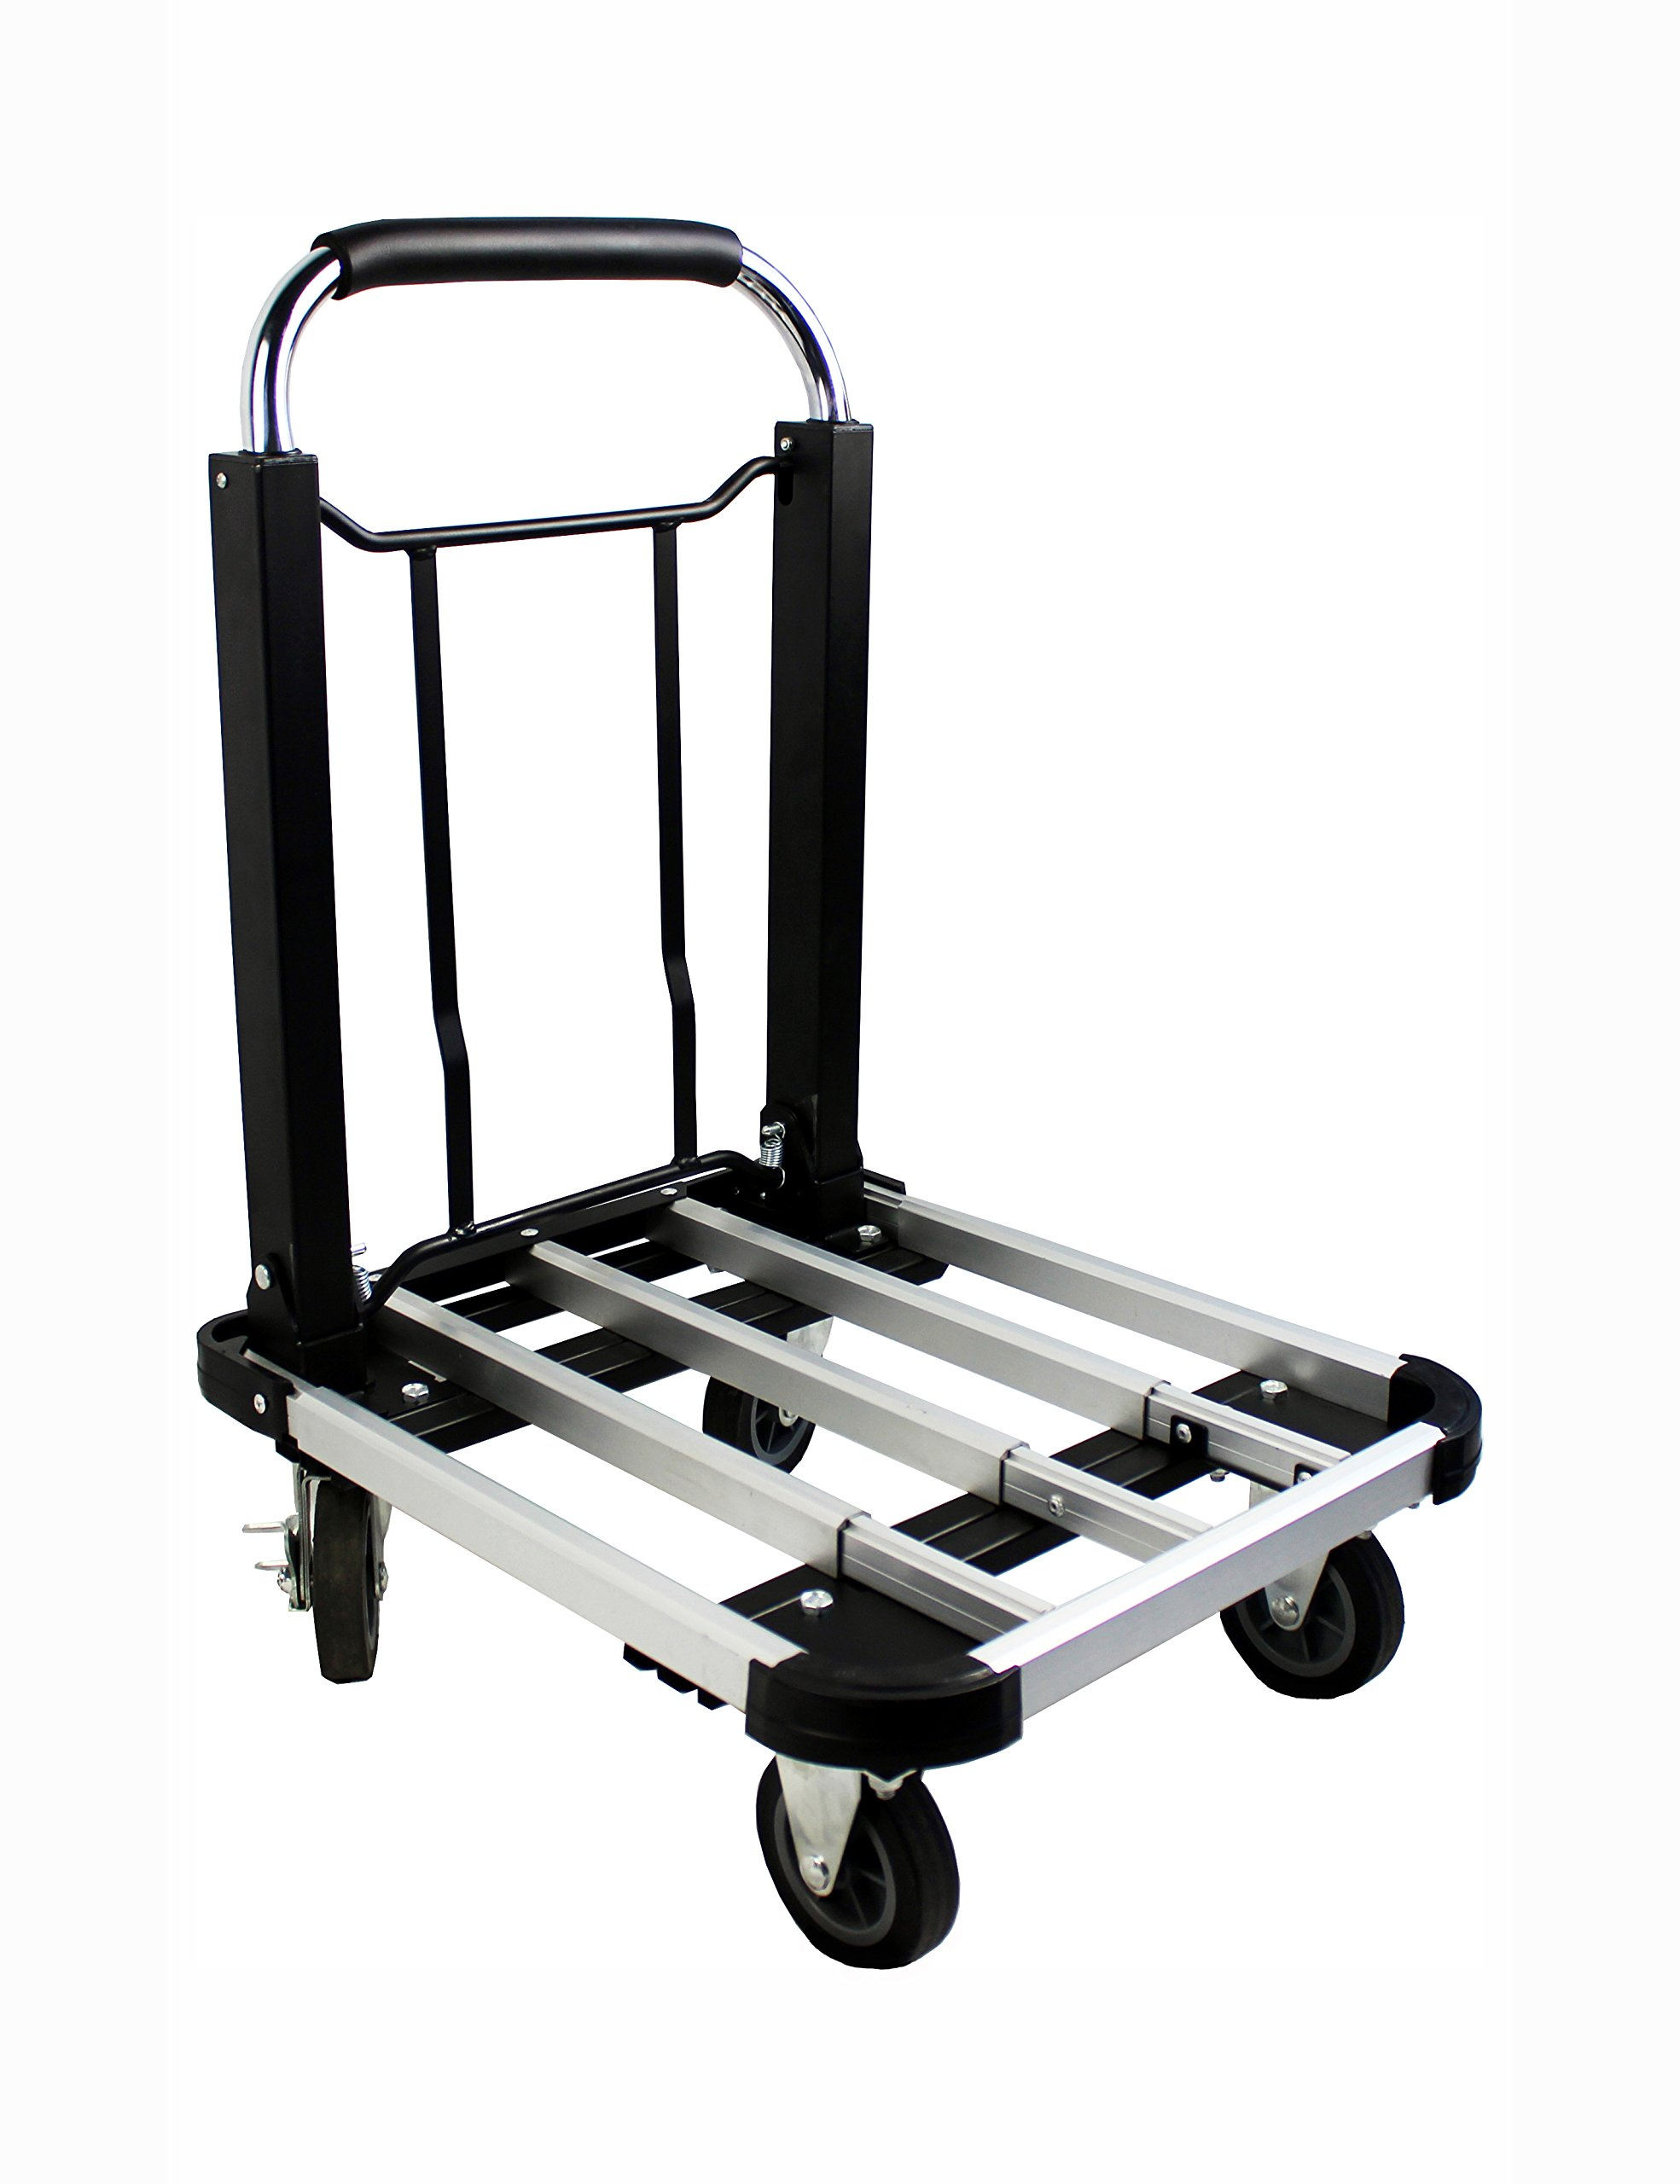 MaxWorks 80744 Aluminum Folding Truck/Dolly-330 Lb. Capacity with Adjustable Platform and Telescoping Handle